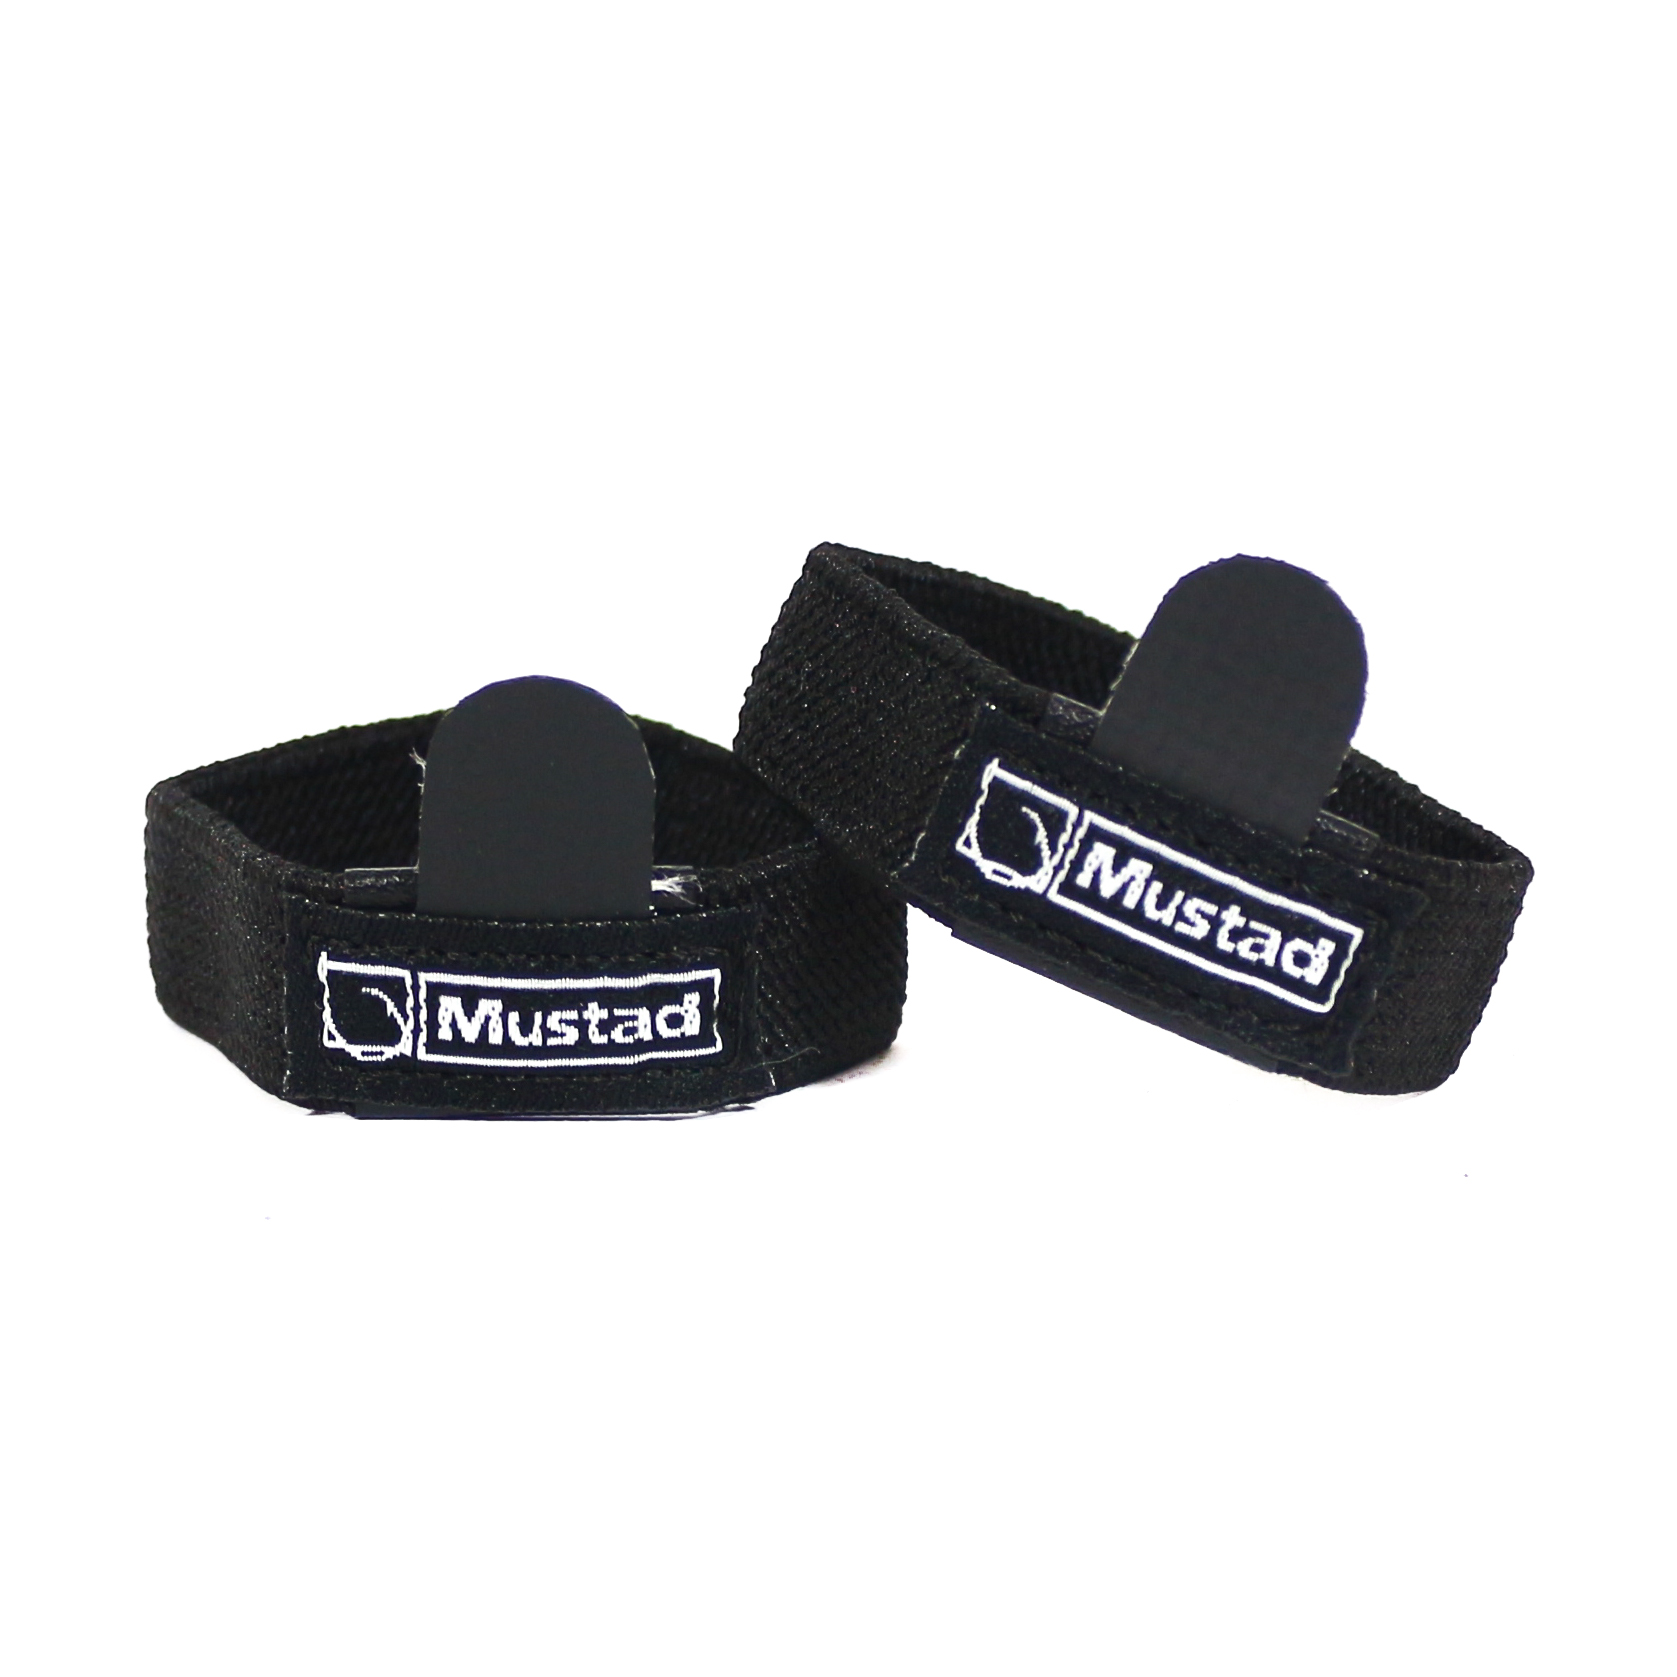 Mustad Spool Band Neoprene Size M Black (5490)